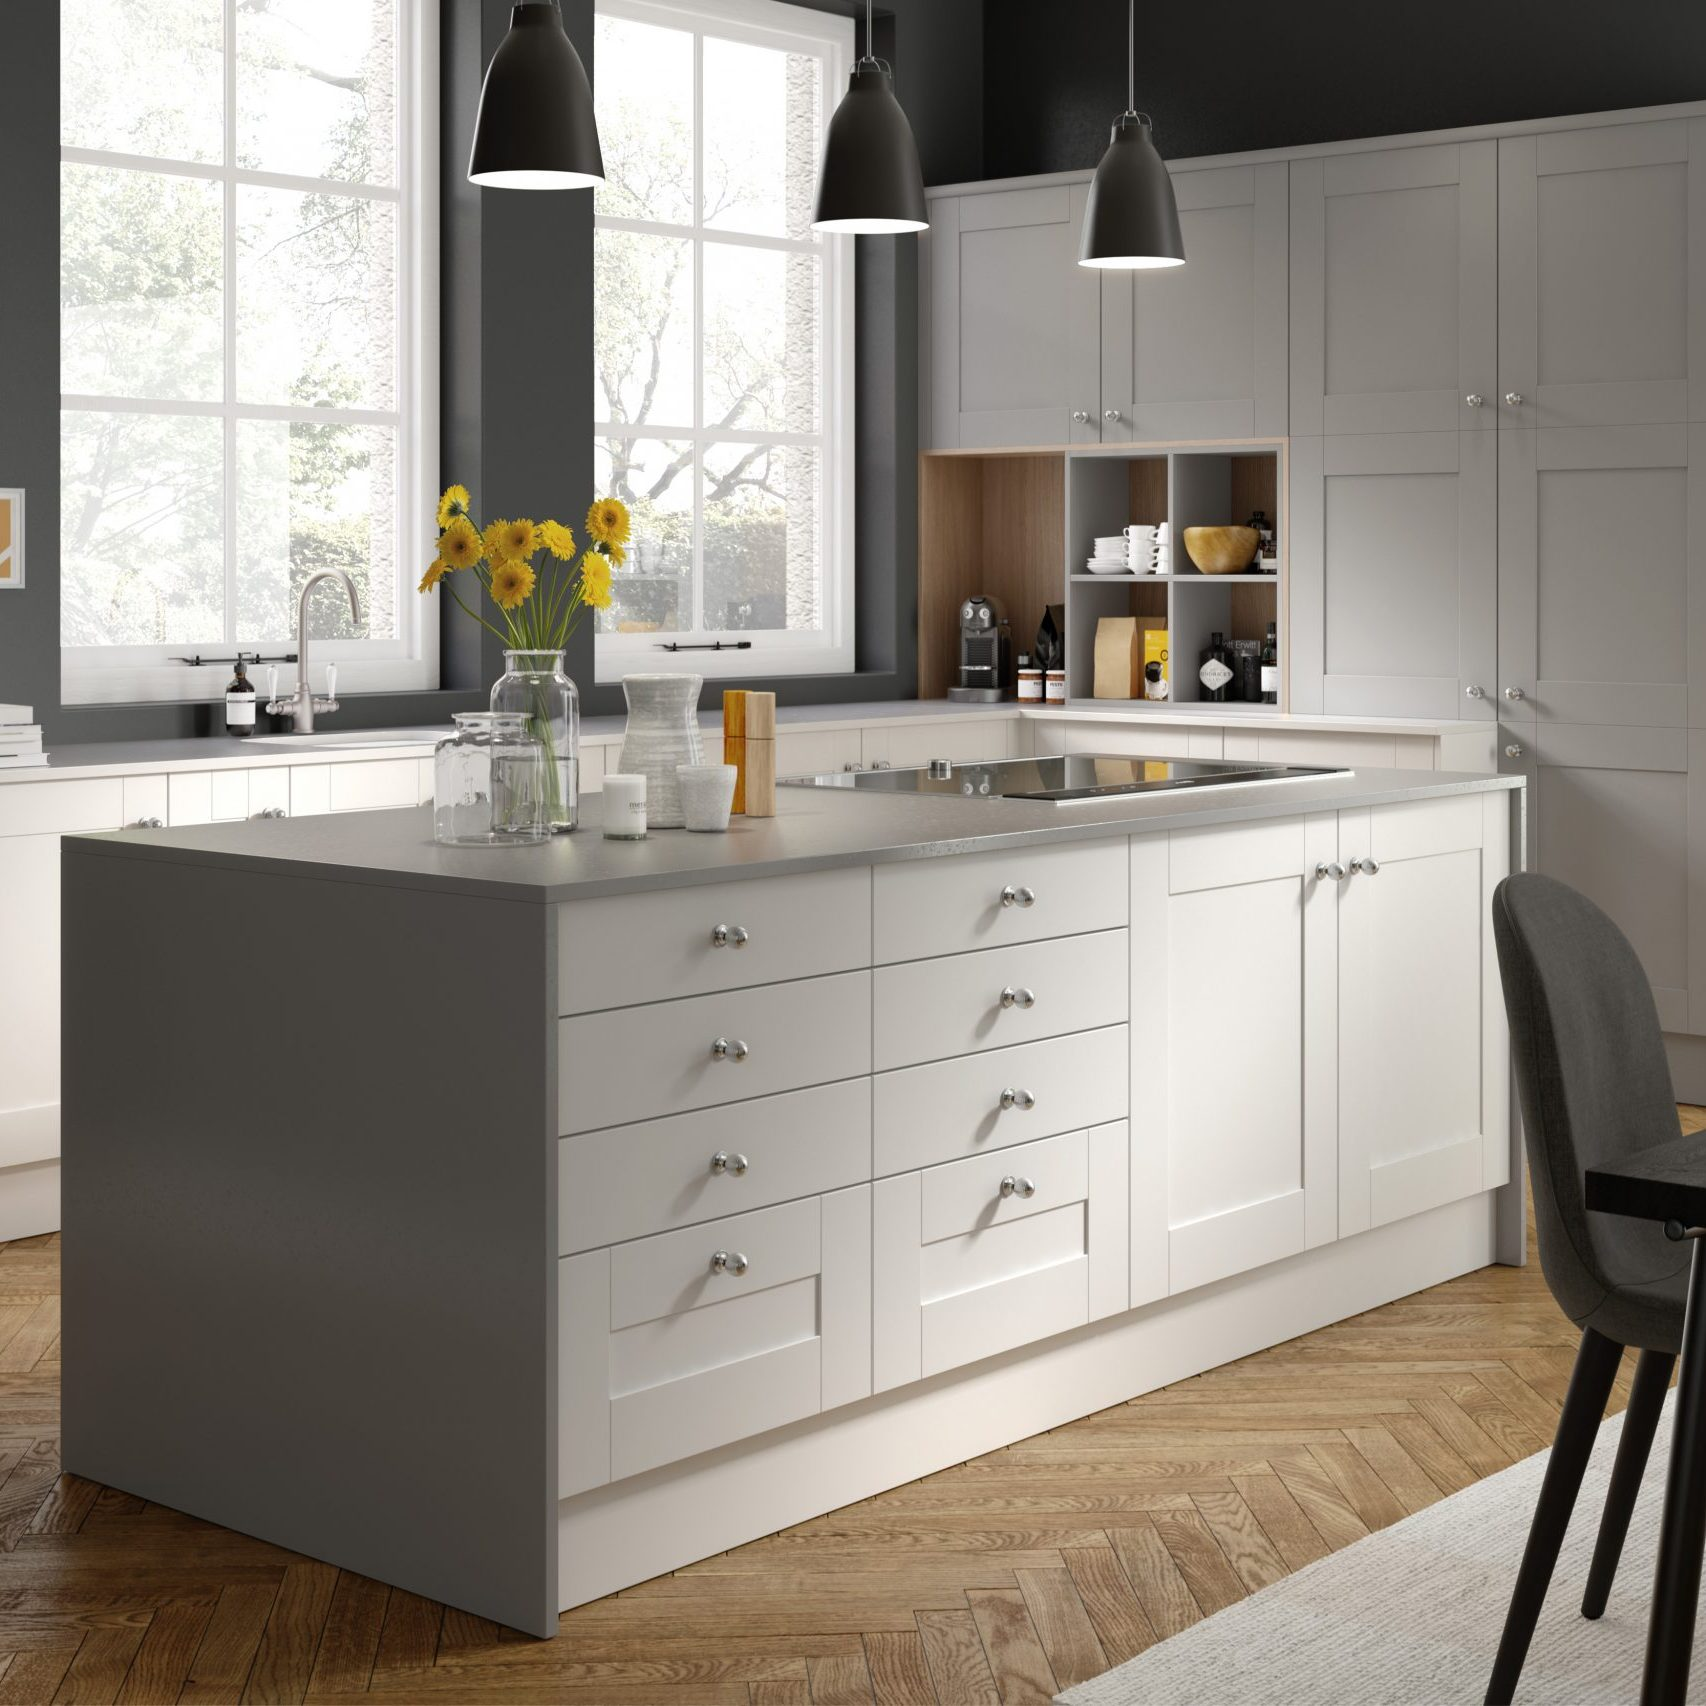 Monochrome colour scheme kitchen